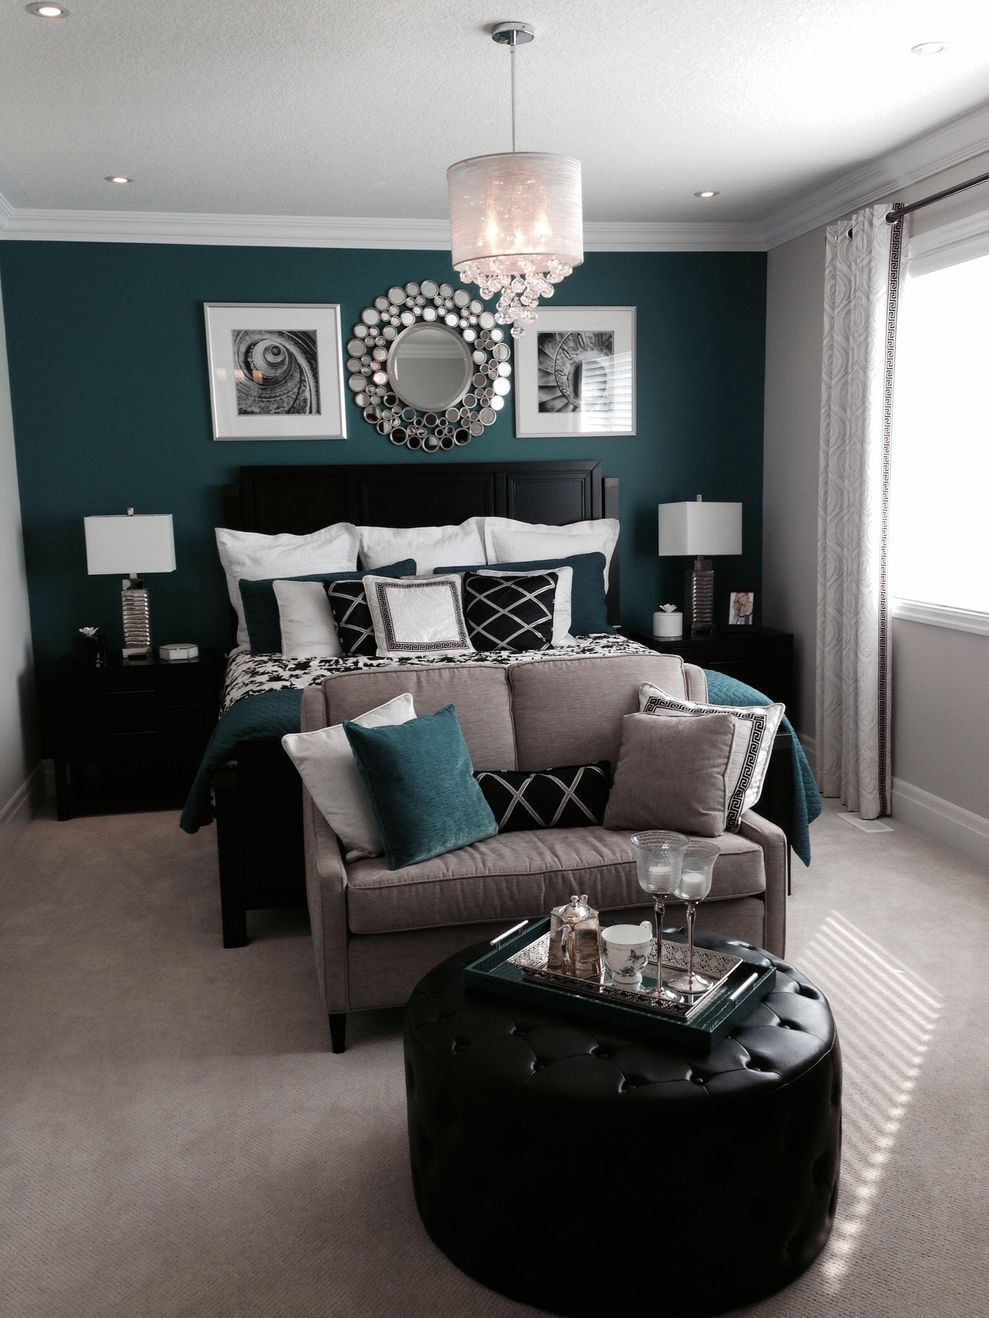 Dark Living Room Ideas: 42 Incredible Teal And Silver Living Room Design Ideas